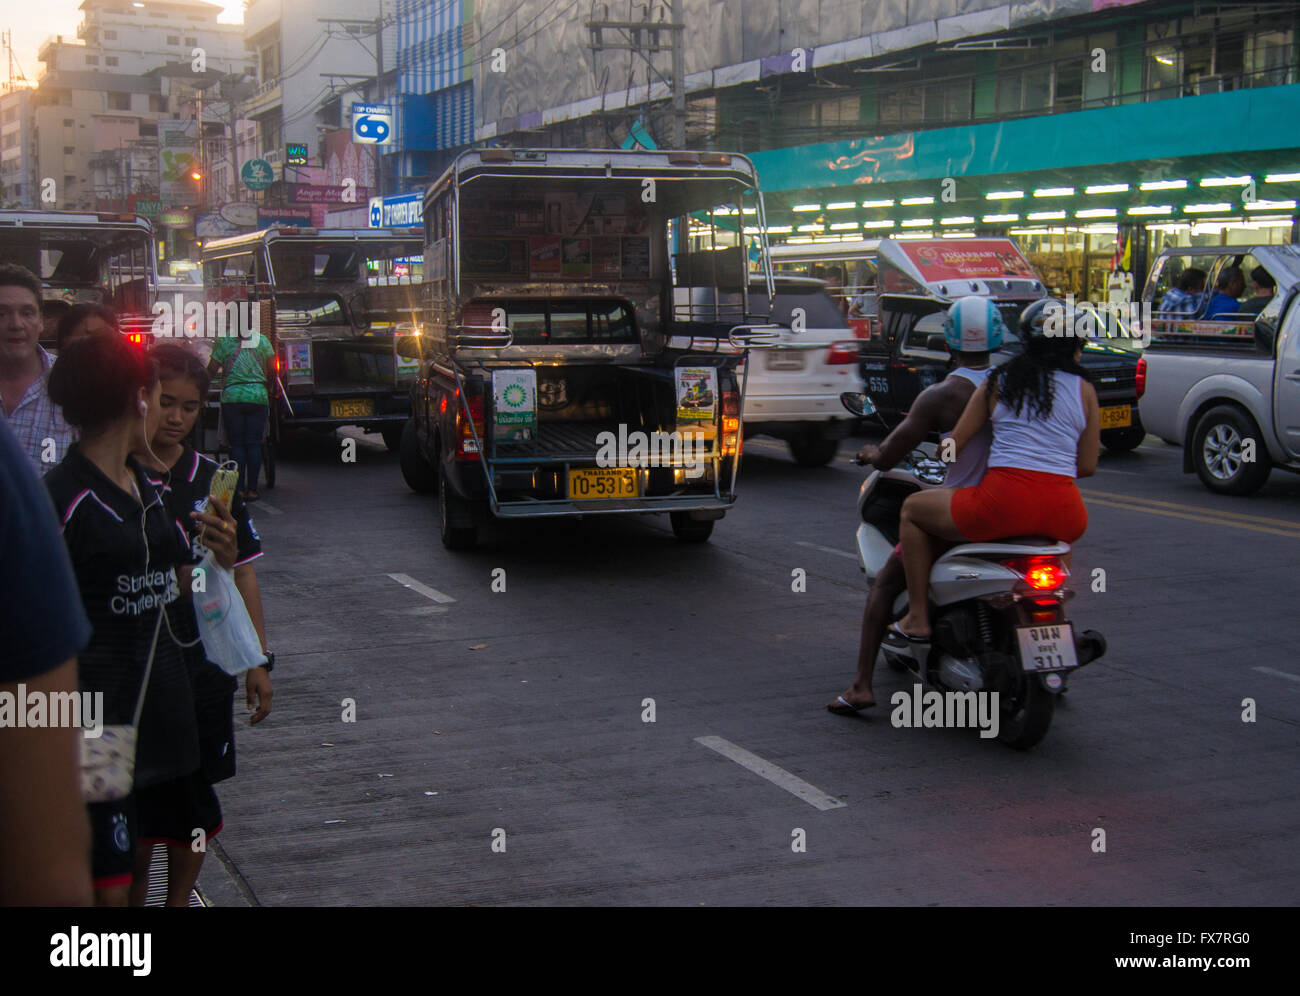 Traffic jam in town, Thailand - Stock Image